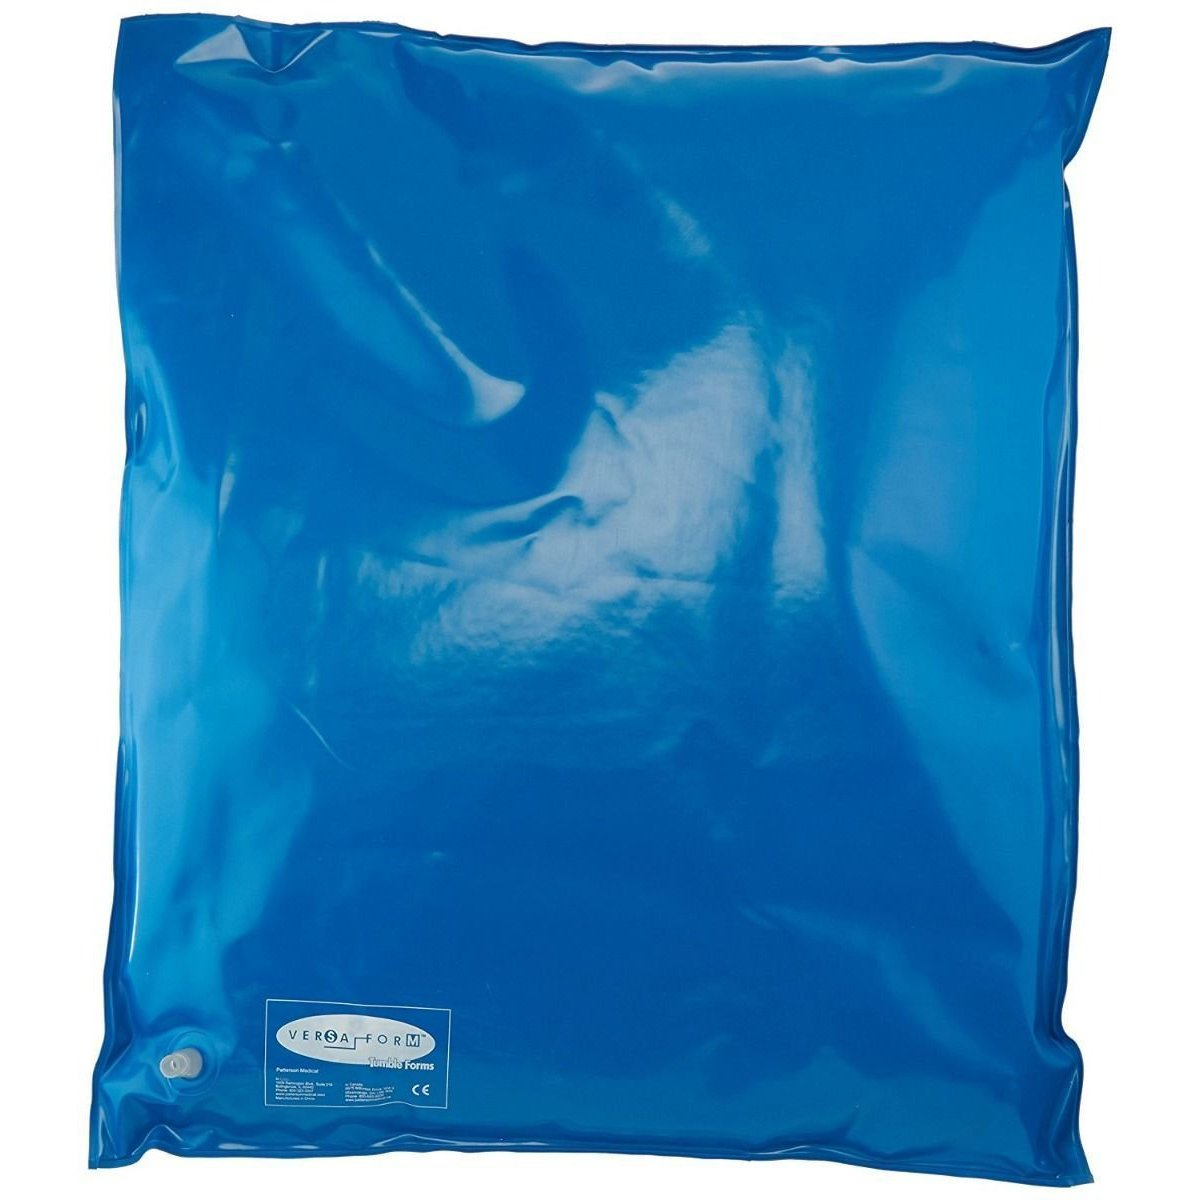 Sammons Preston Versa Form Plus Positioning Pillow, Blue, 22'' by 34'', Bed Pillow Provides Support & Postural Correction, Cushion with Beads Conform to Body, Posture Pillow Reduces Back & Hip Pain by Sammons Preston